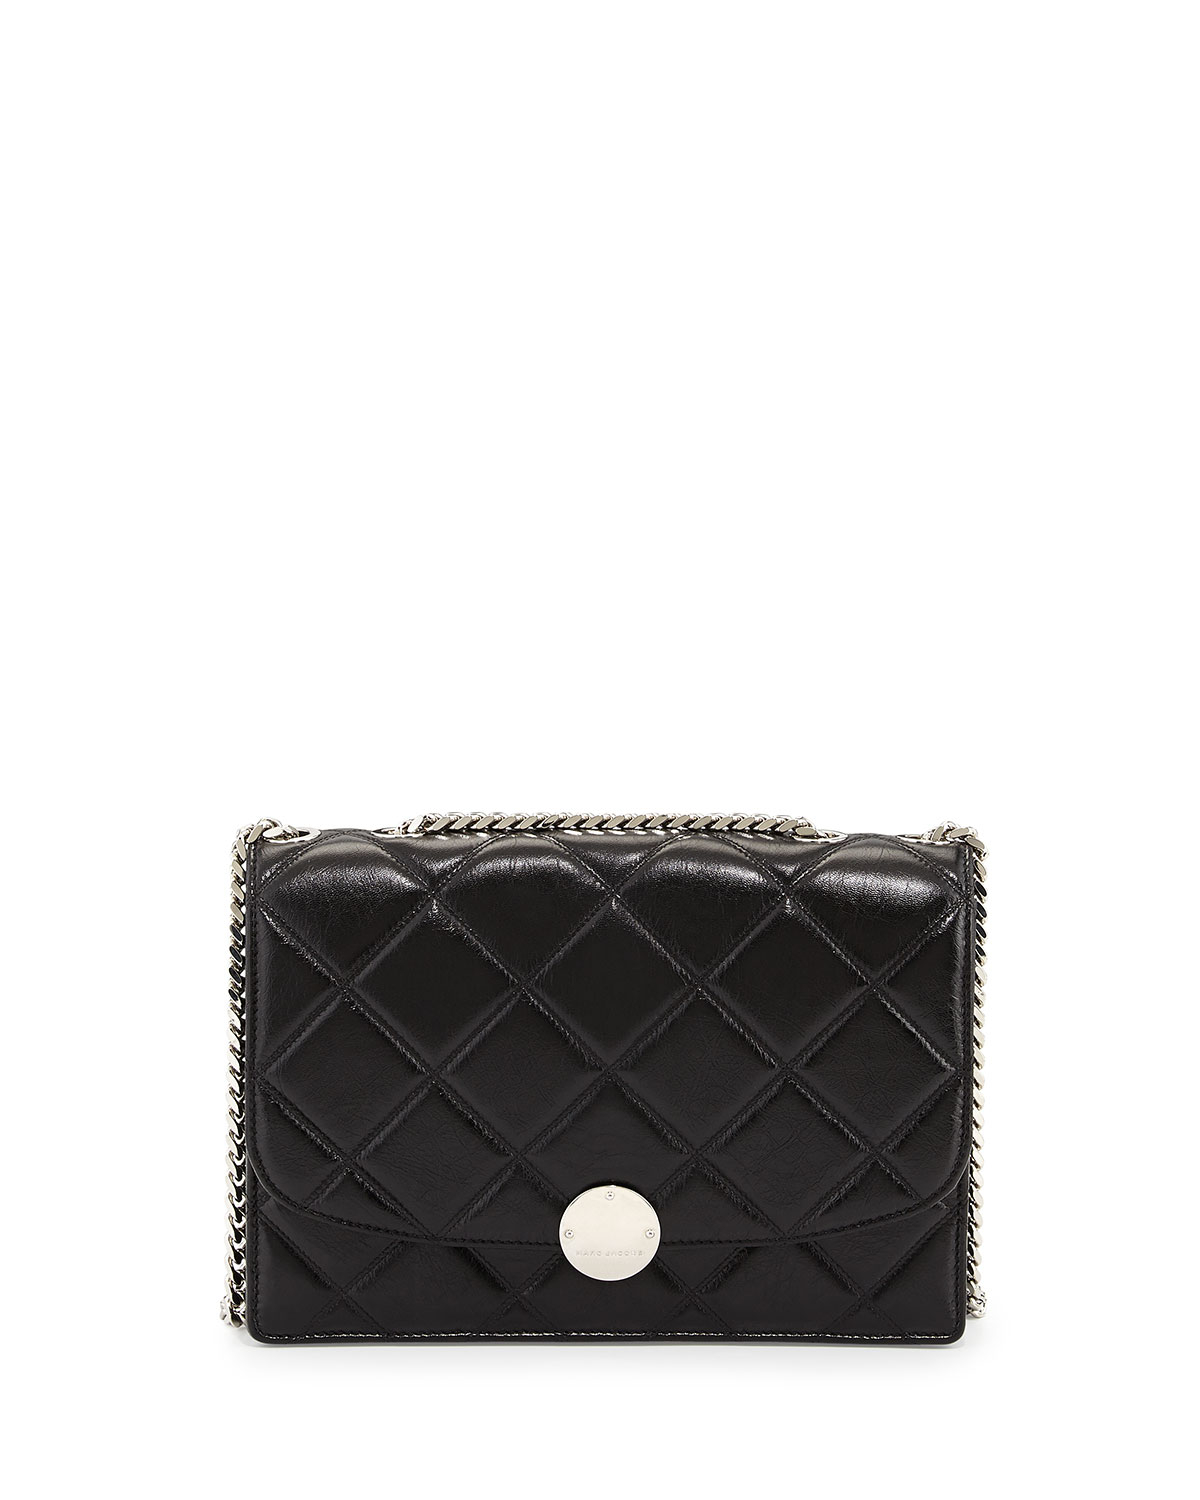 Lyst - Marc Jacobs Quilted Trouble Shoulder Bag in Black 2a661e9f1e1d3